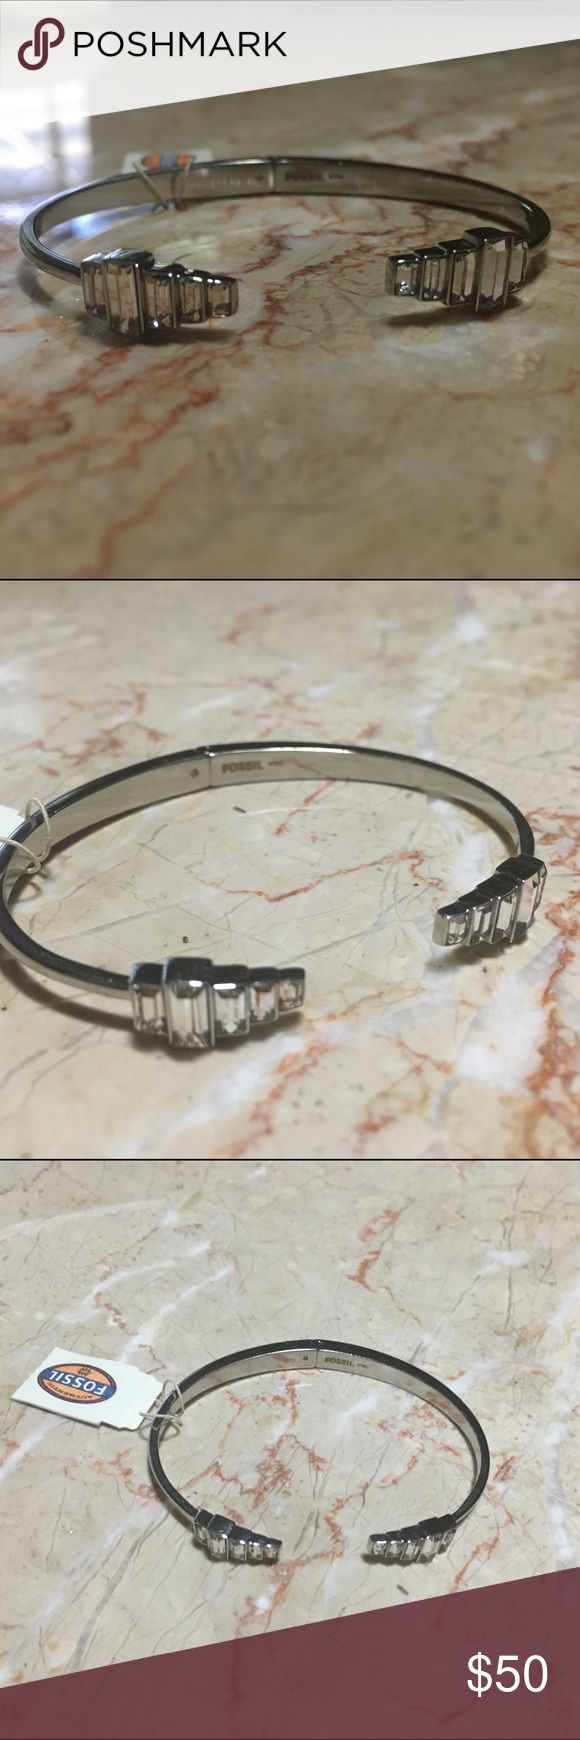 NWT FOSSIL Art Deco Glitz Bracelet NWT Fossil Bracelet. Deco Glitz Style. Hinge in the middle of the bracelet to easily put it on. Stainless Steel. 💓 Thanks for looking! Please comment with questions! Fossil Jewelry Bracelets